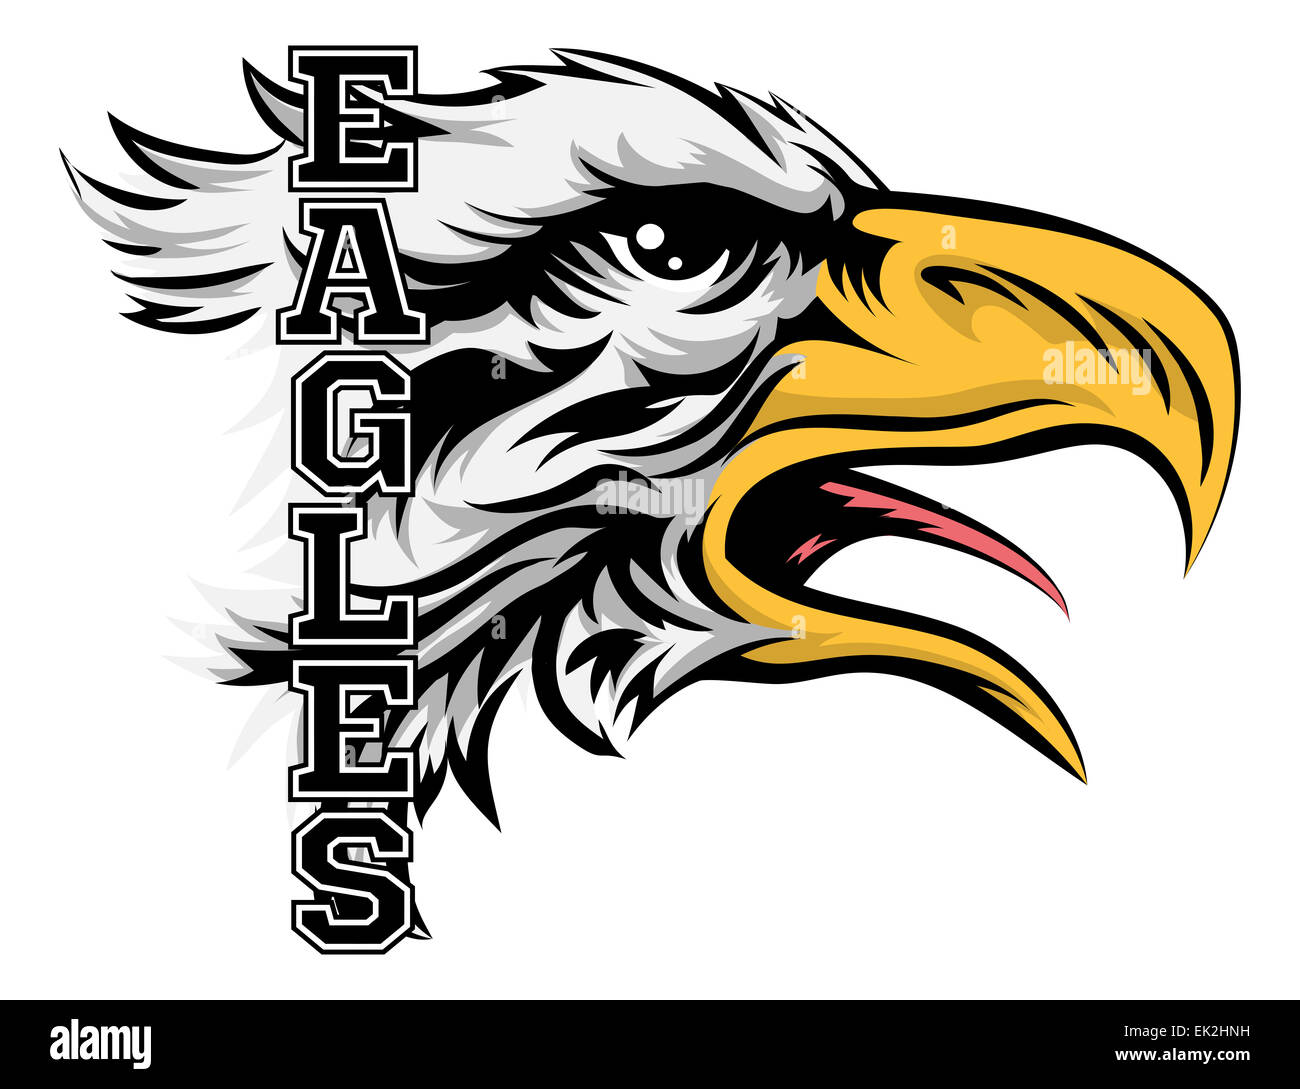 hight resolution of an illustration of a cartoon eagle sports team mascot with the text eagles stock image